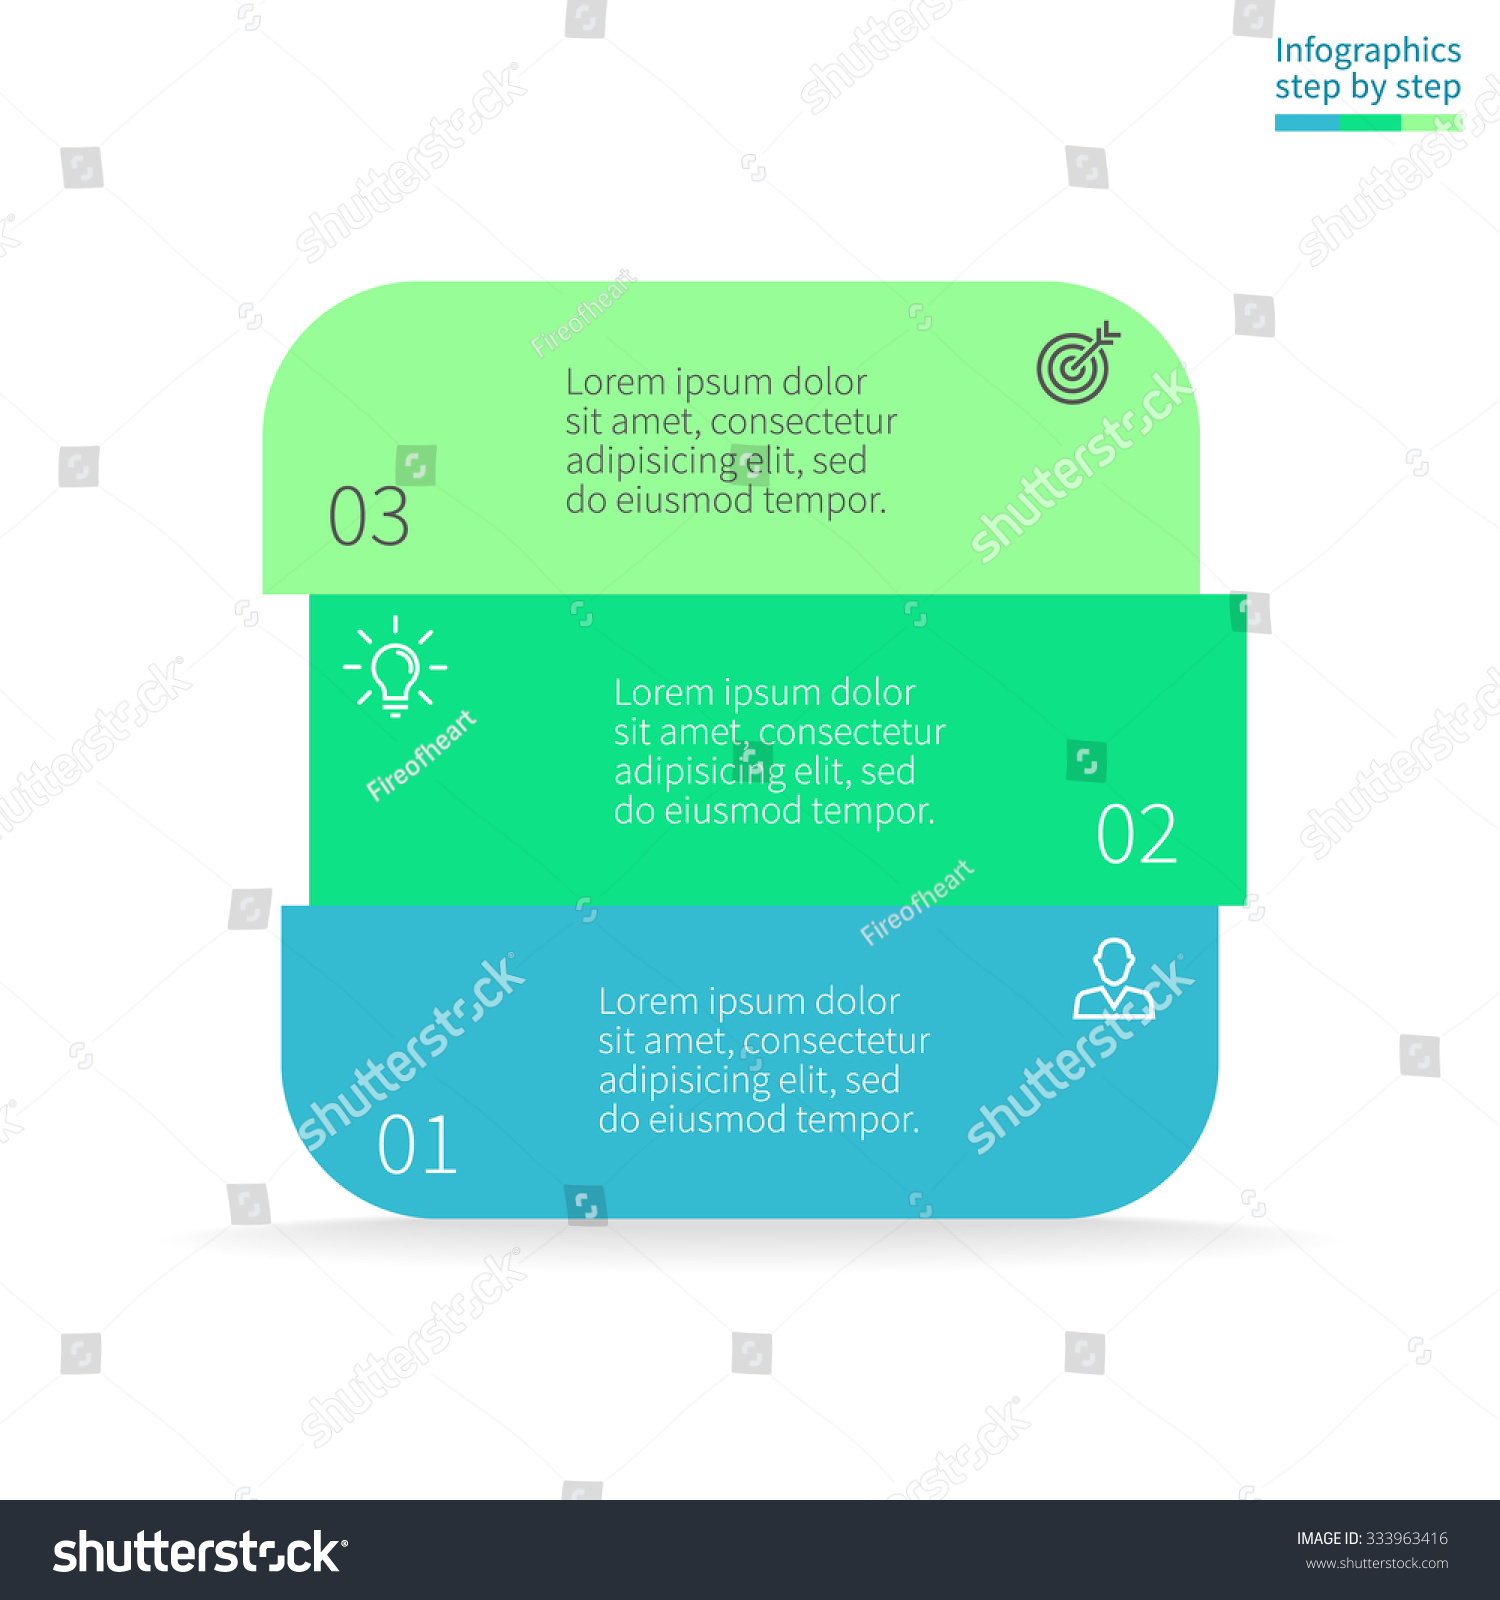 hight resolution of infographics step by step in the form of rounded square box with colored sections